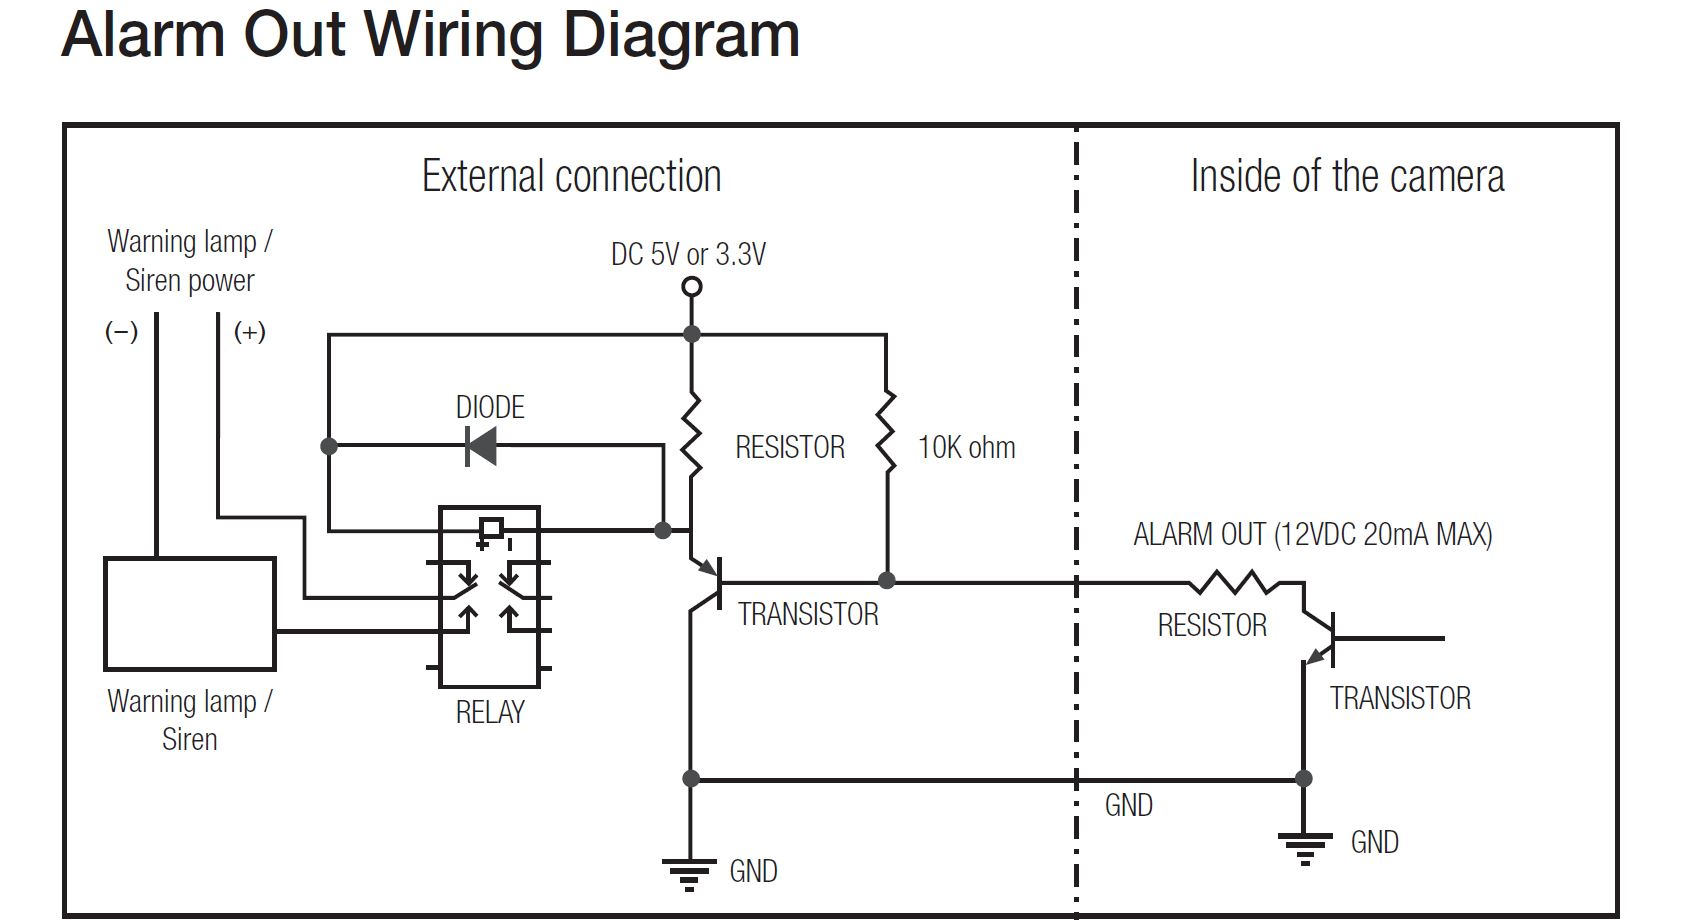 Camera - Alarm Out connected to a generic Relay Module ... on power window relay diagram, tamper switch wiring diagram, power wiring diagram, car alarm wiring diagram, 4 wire relay diagram, relay configuration diagram, color wiring diagram, relay connection diagram, dimensions wiring diagram, key wiring diagram, control wiring diagram, car relay diagram, fuse wiring diagram, transformer wiring diagram, alarm system wiring diagram, battery wiring diagram, alarm panel wiring diagram, 11 pin relay diagram, sensor wiring diagram, range wiring diagram,